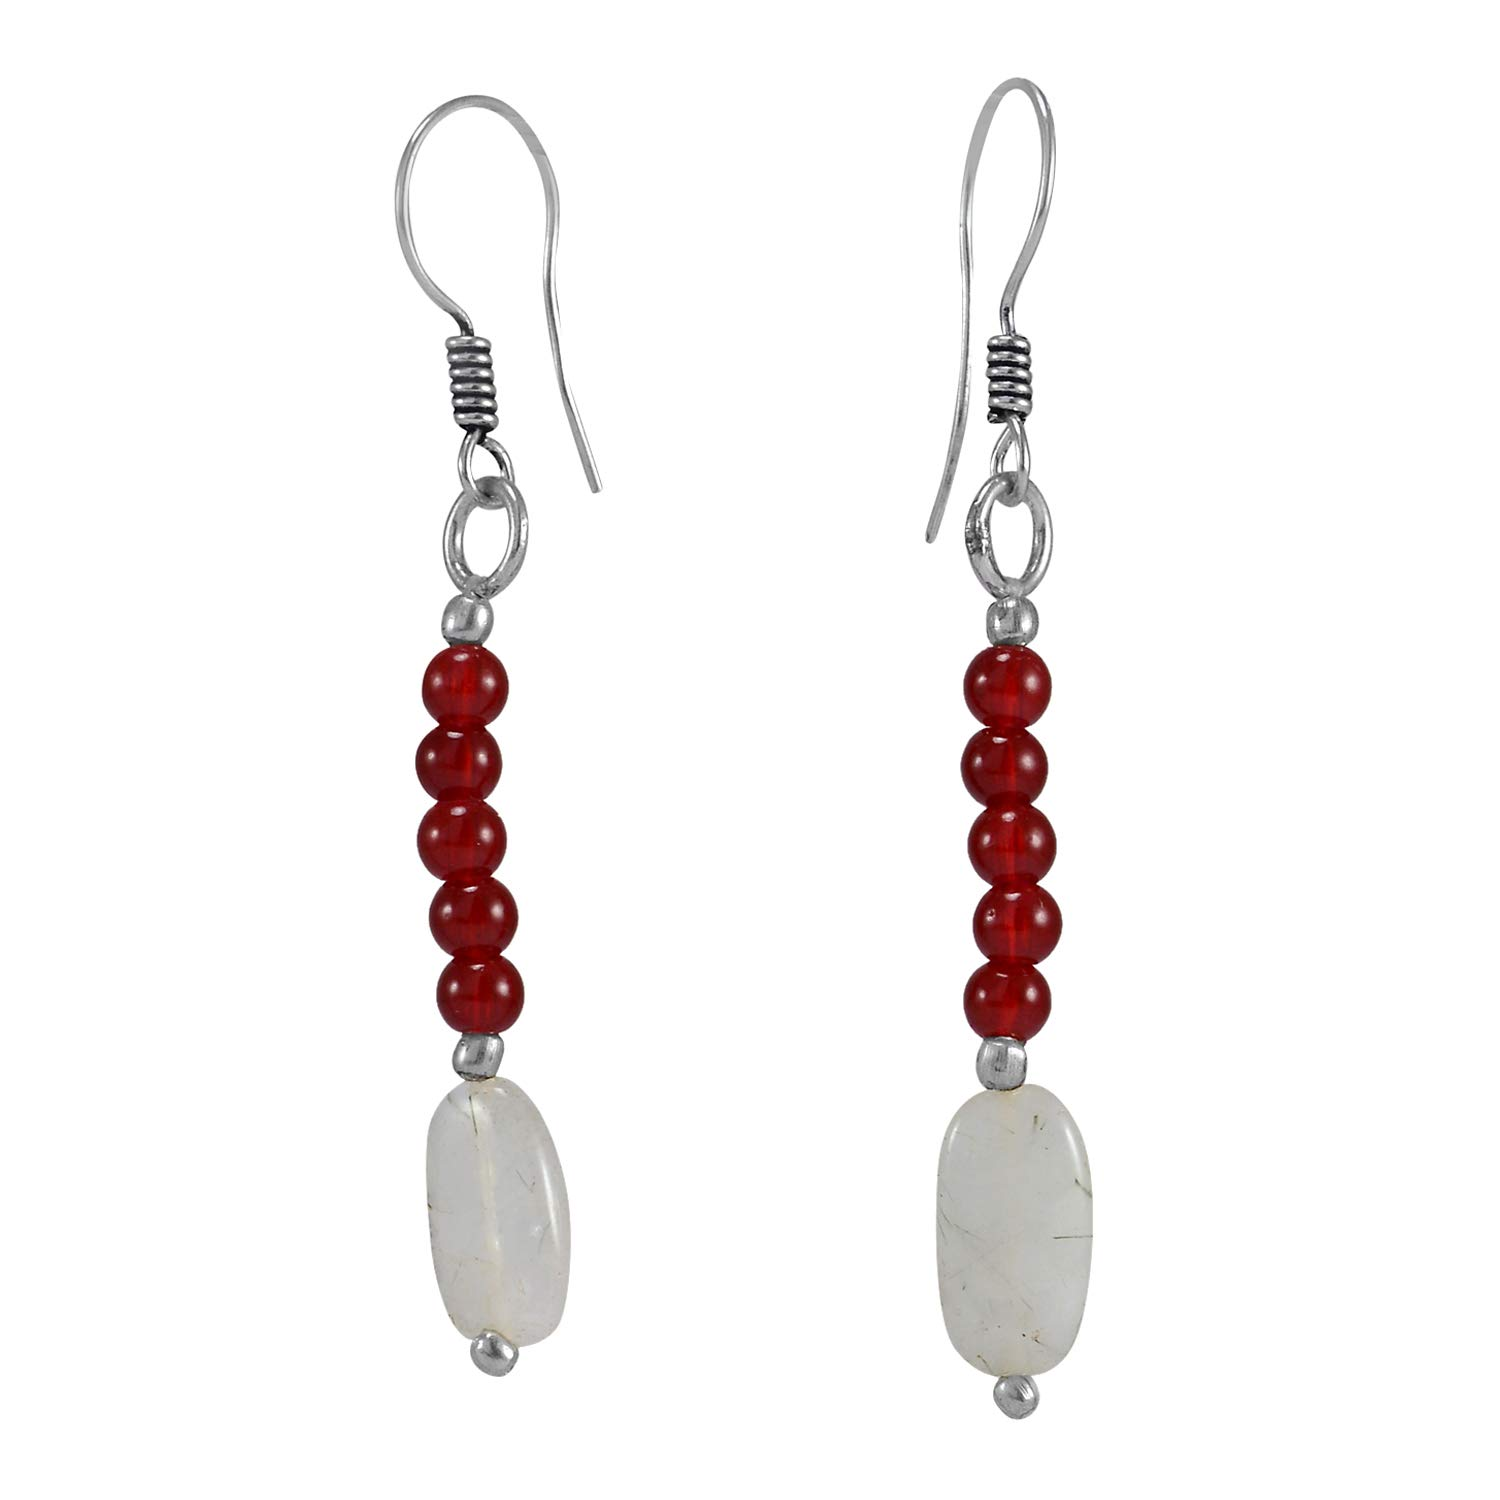 Handmade Jewelry Manufacturer 4mm Beads Round Red /& White Quartz Layering Dangle Earring Jaipur Rajasthan India 925 Silver Plated